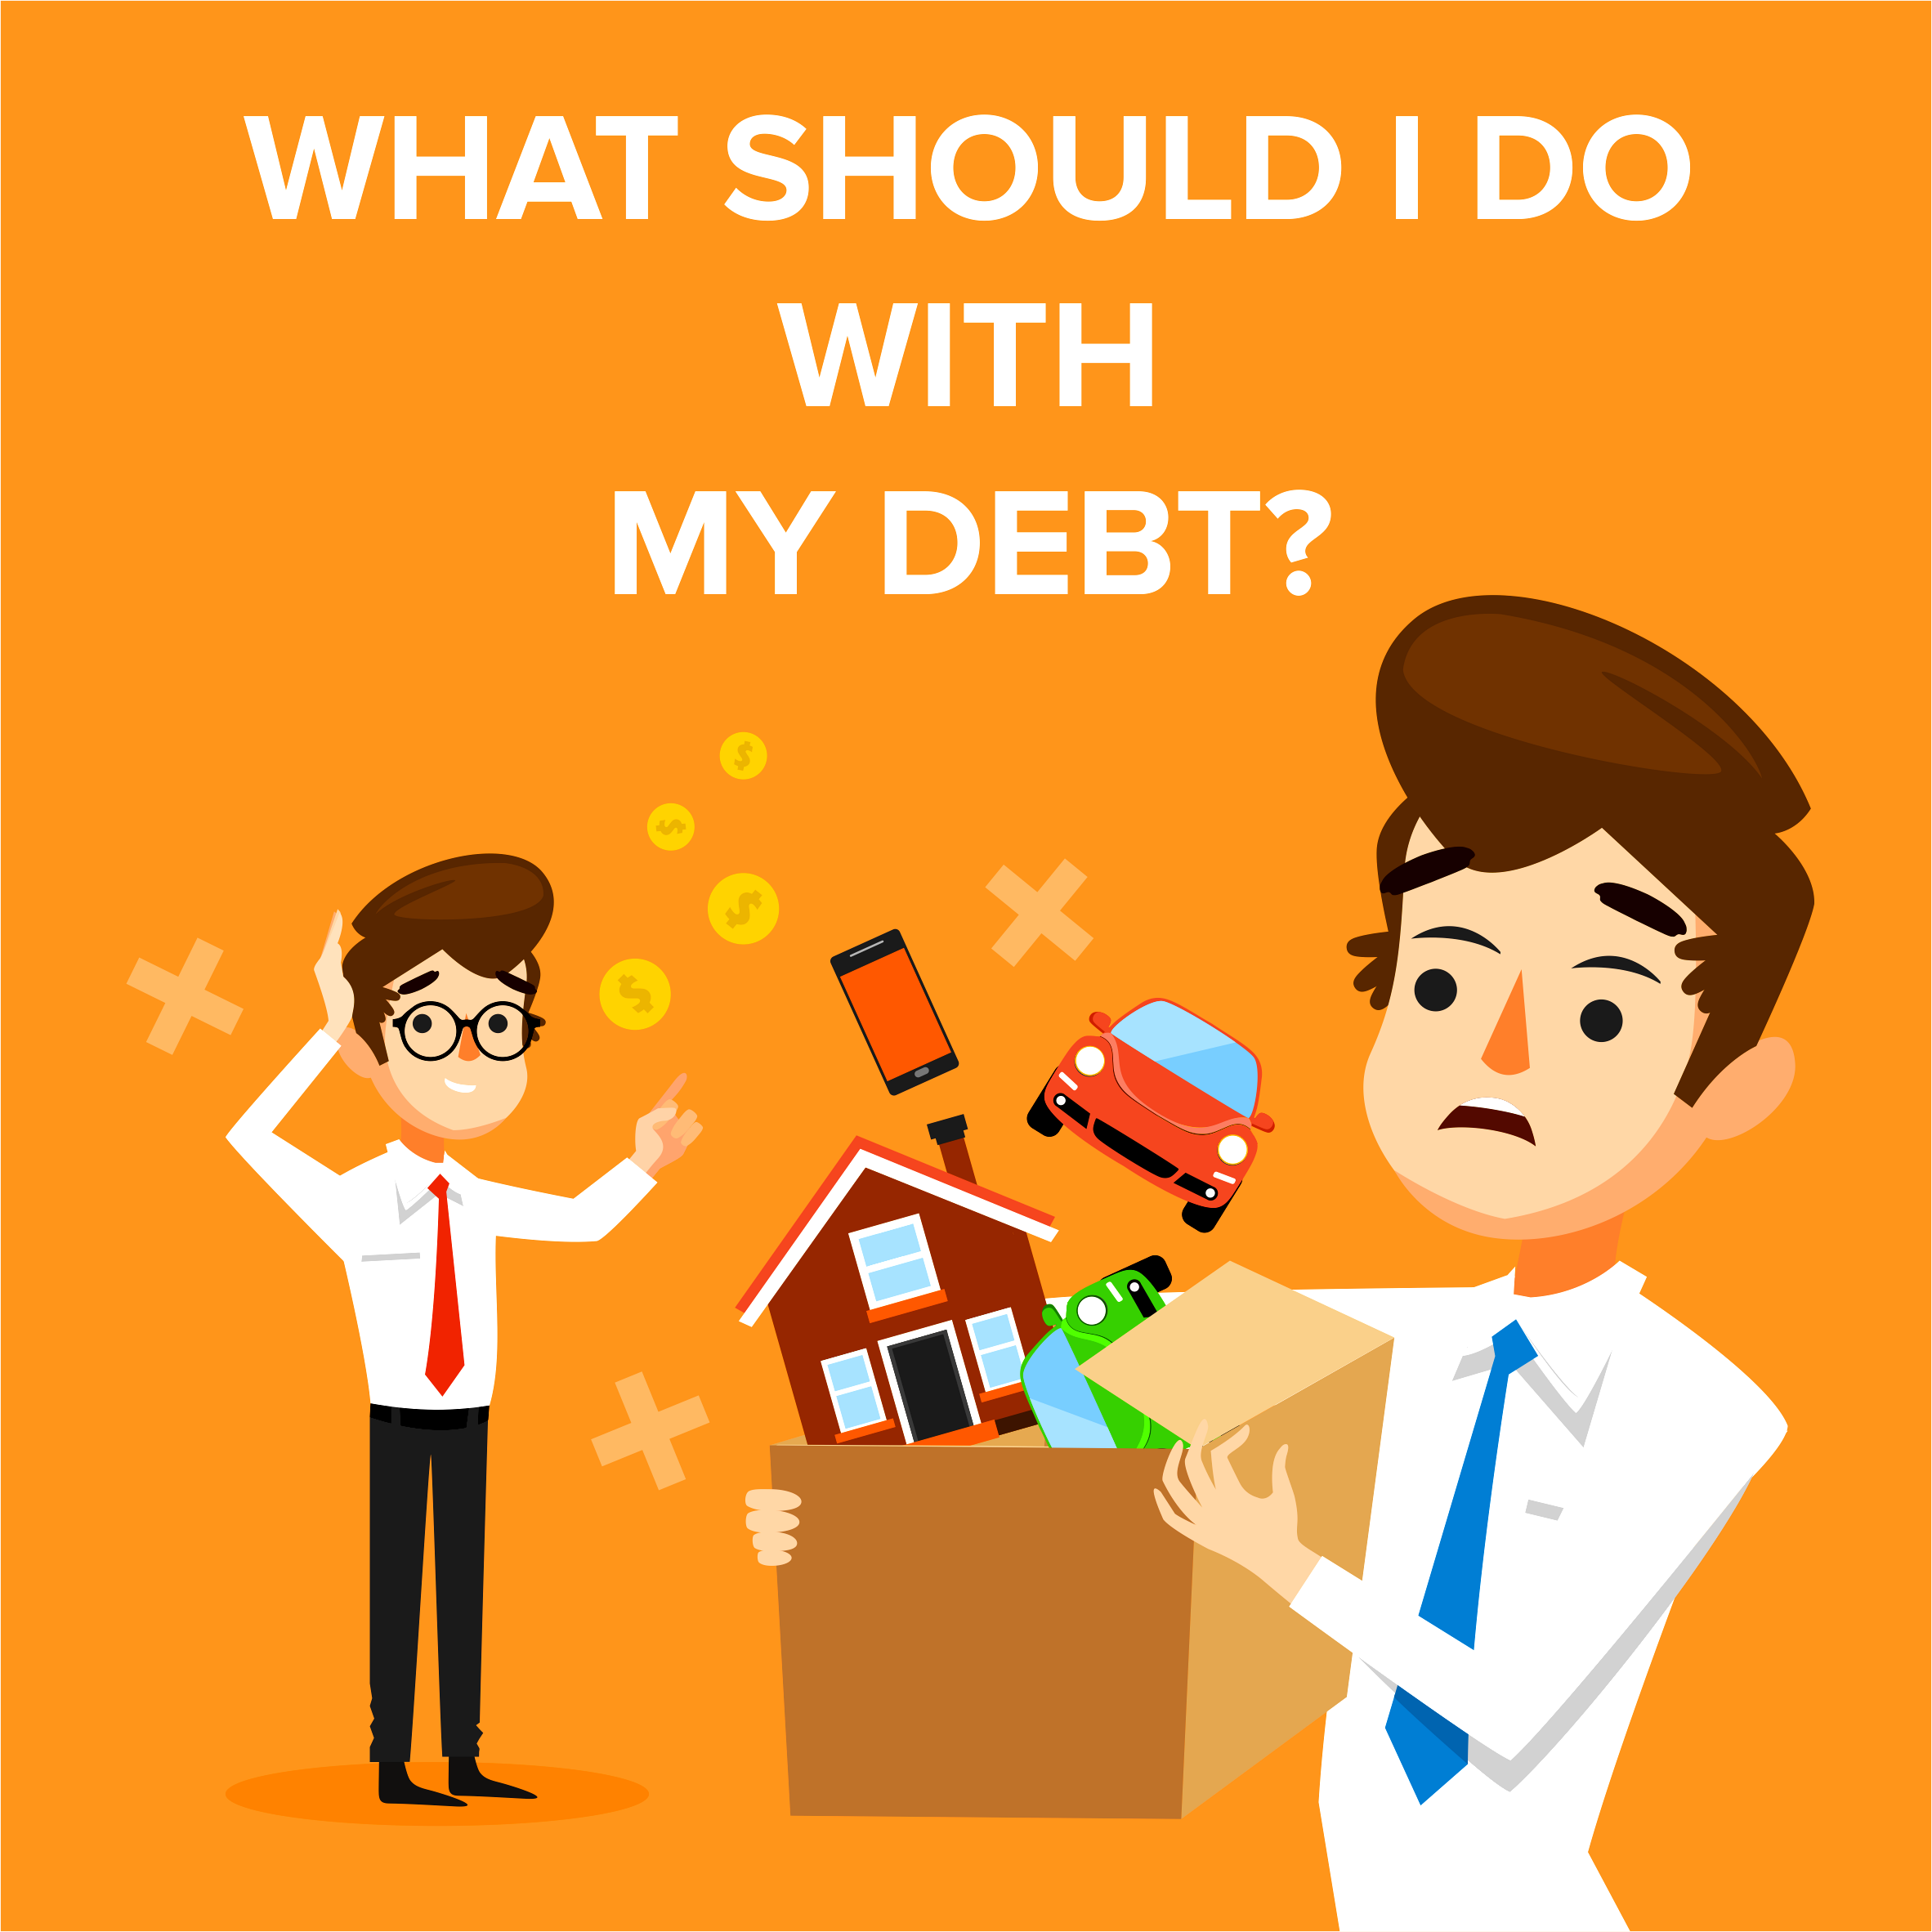 What Should I do With my Debt?